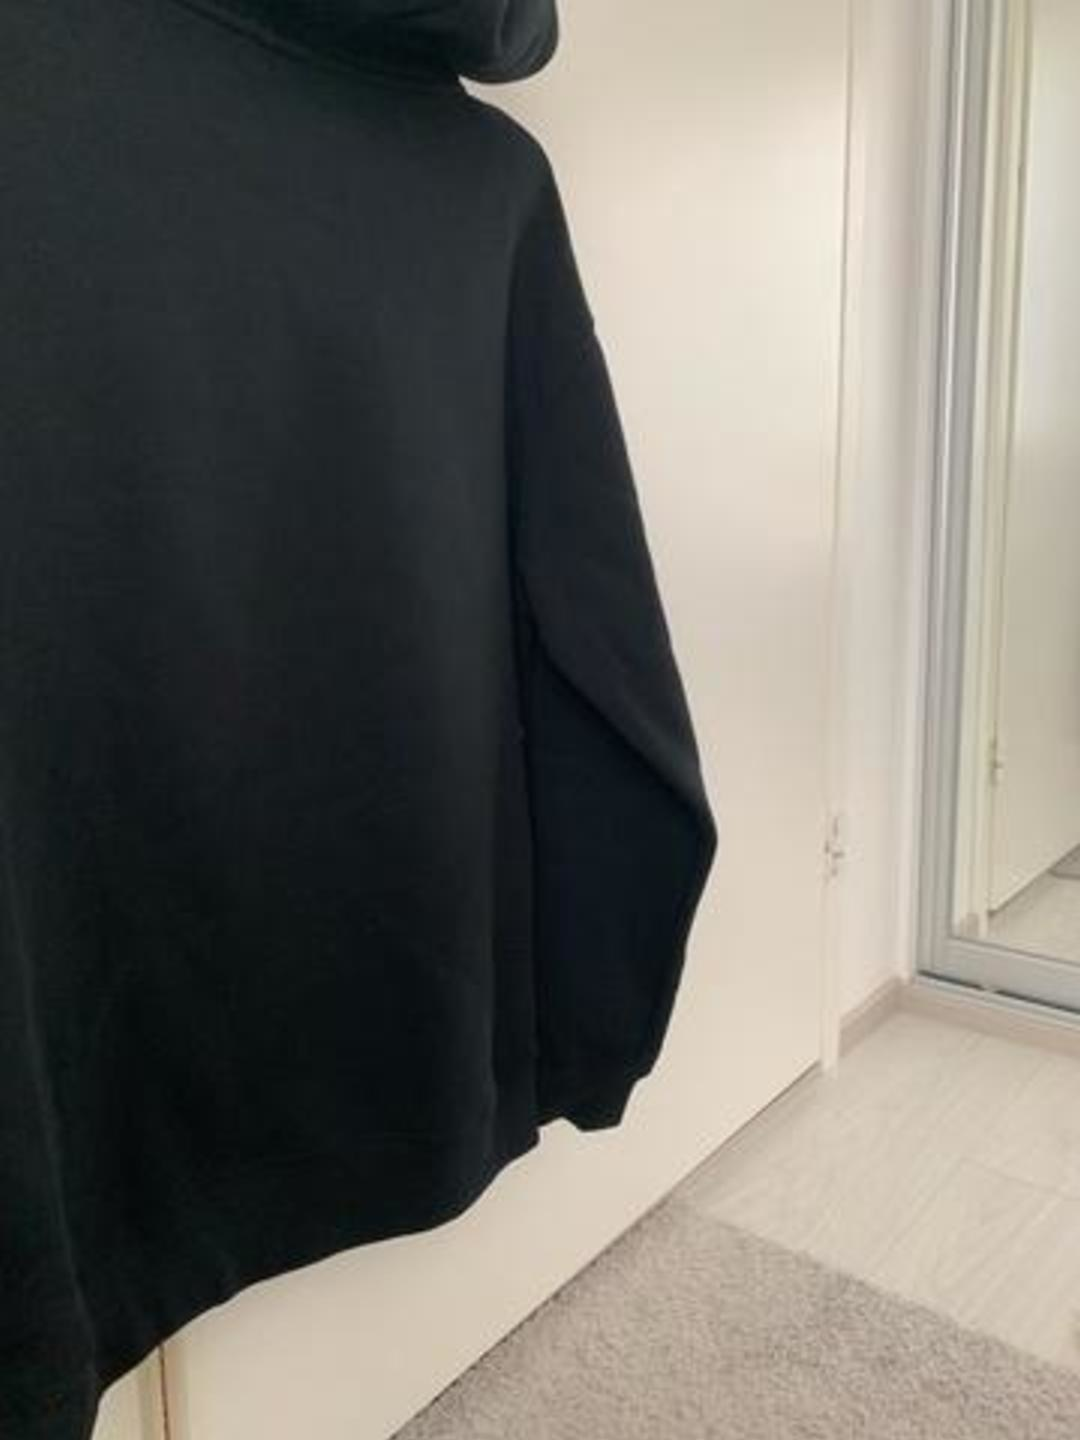 Damers hættetrøjer og sweatshirts - MARIMEKK0 photo 2